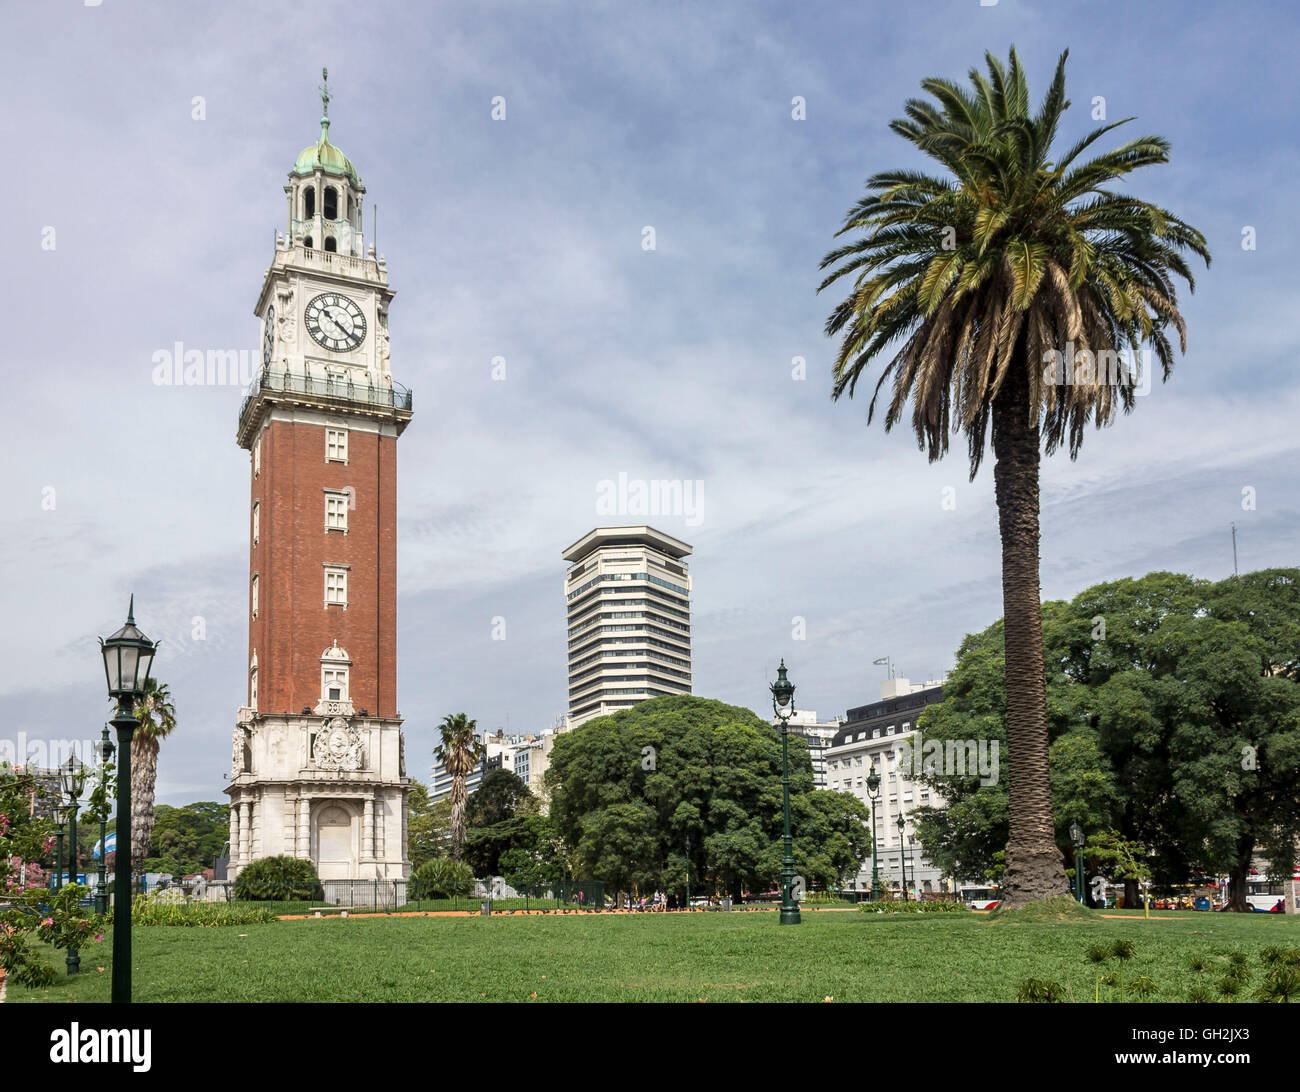 Torre Monumental Clock Tower Plaza San Martin, Buenos Aires, Argentina - Stock Image